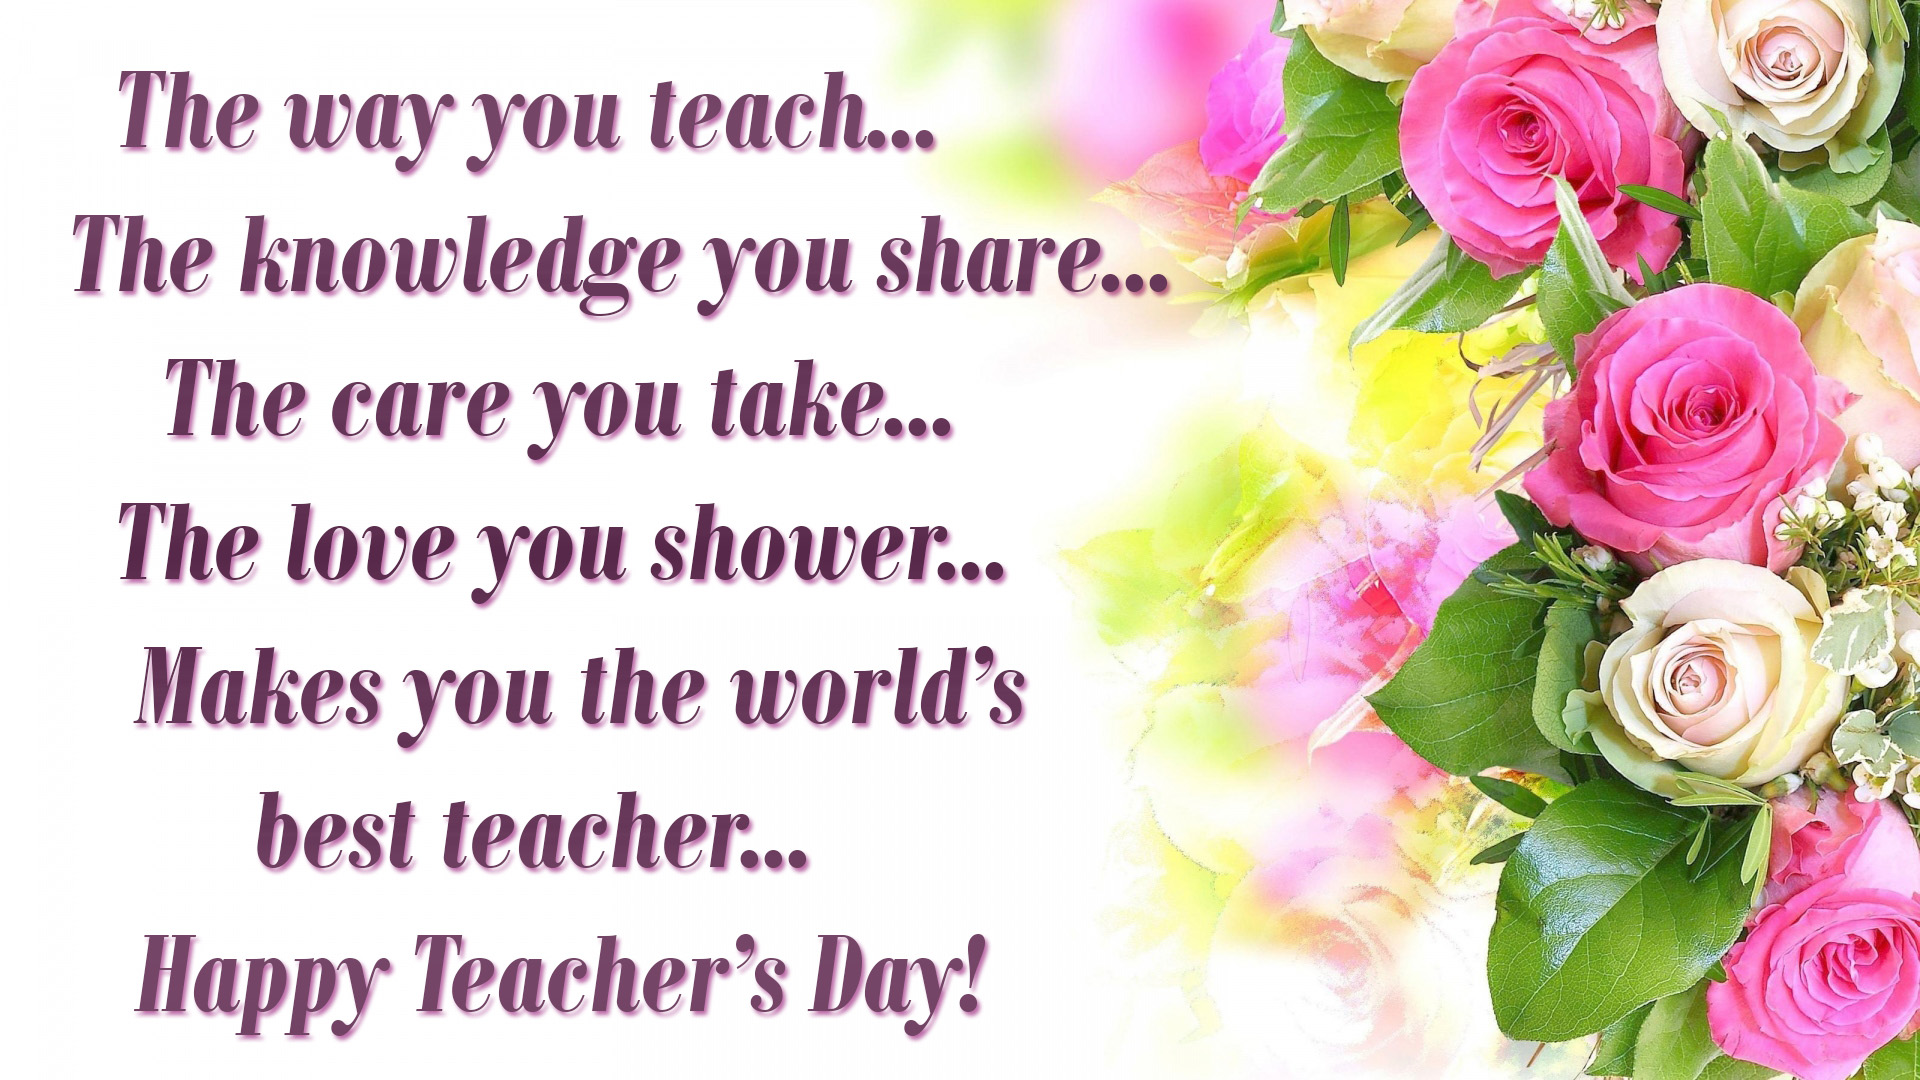 Happy Teachers Day Wishes 2018 Images Teachers Day 2018